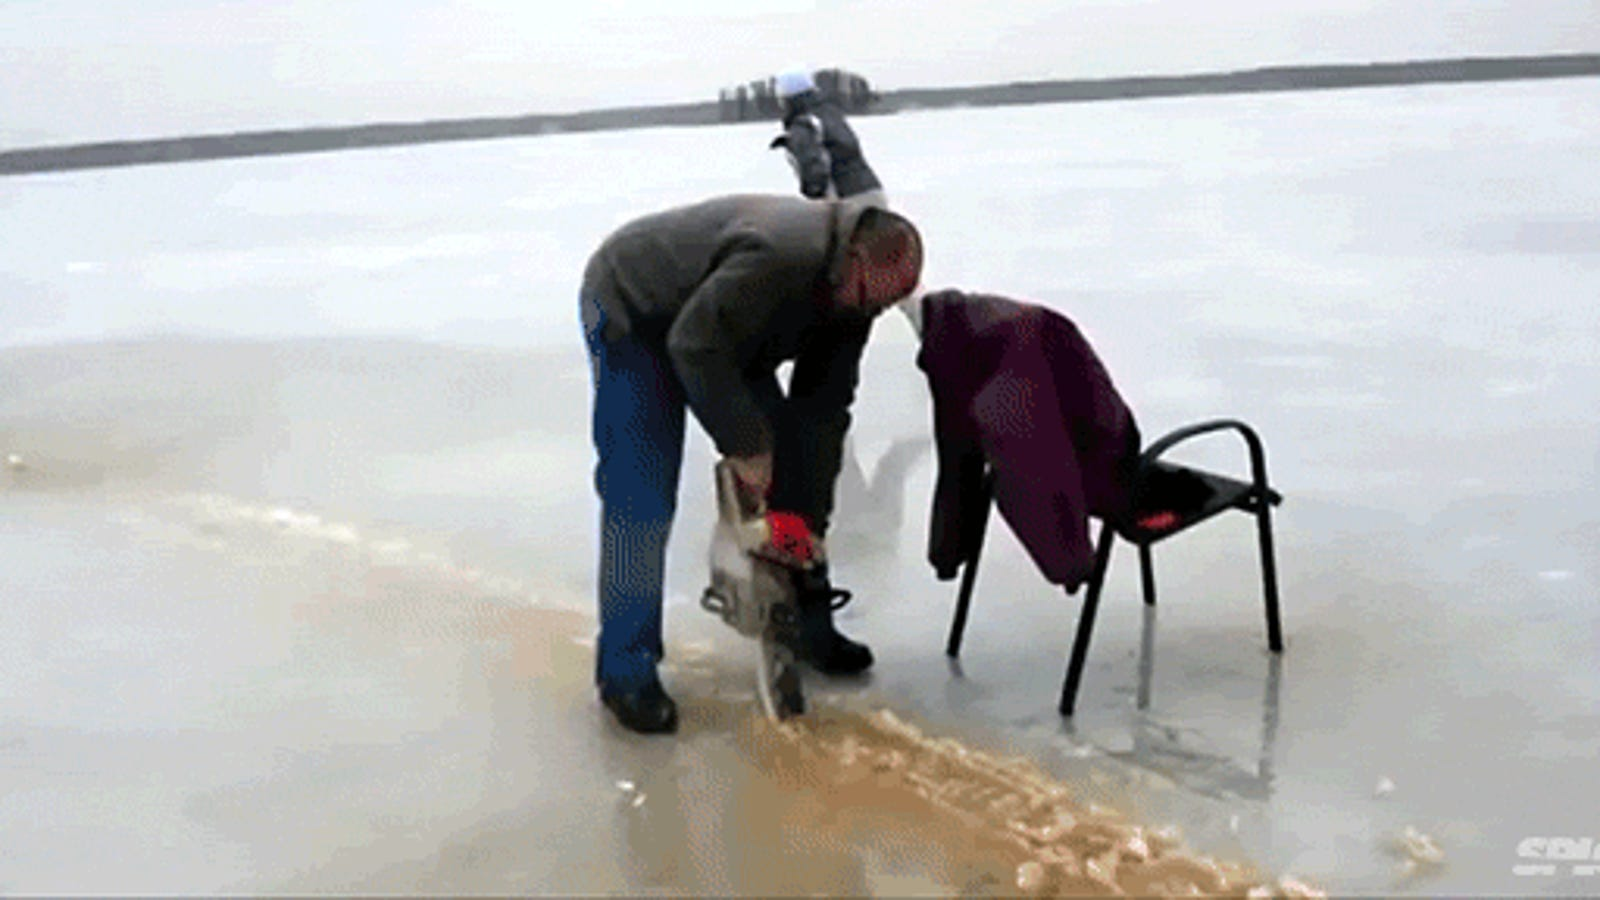 Crazy people chainsawed a frozen lake to make a spinning ice